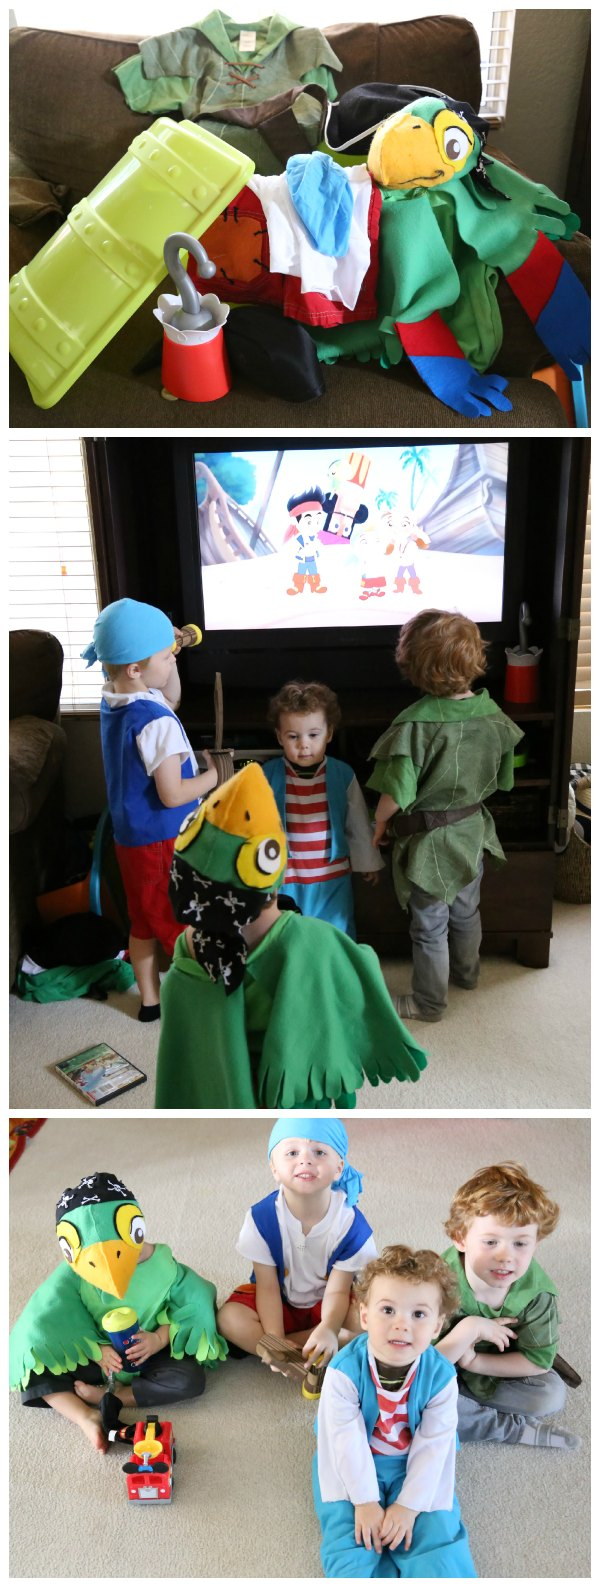 Jake and the Never Land Pirates Costumes